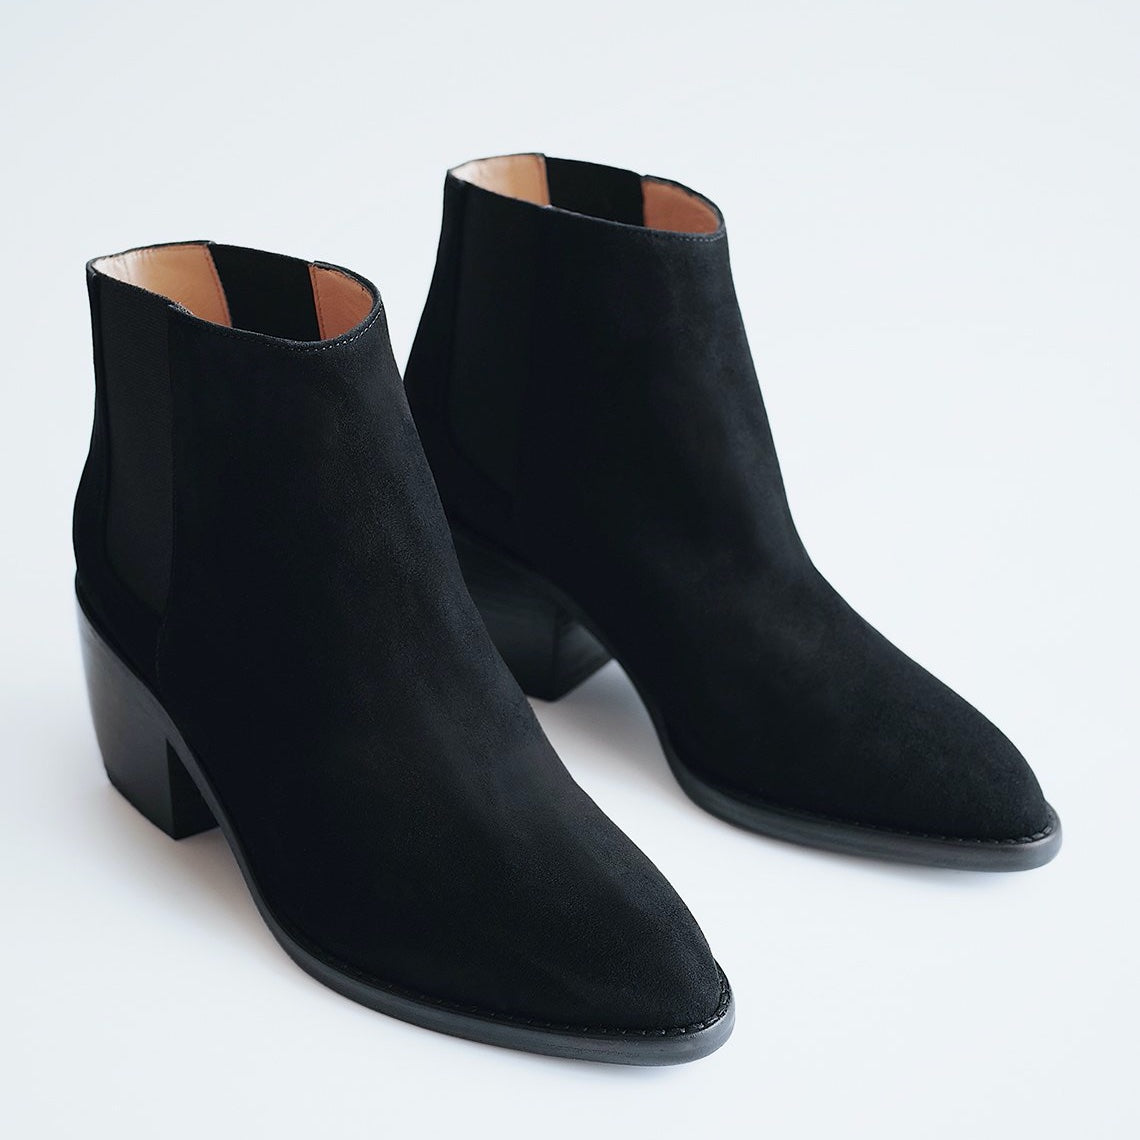 INCH2 WESTERN ANKLE BOOTS